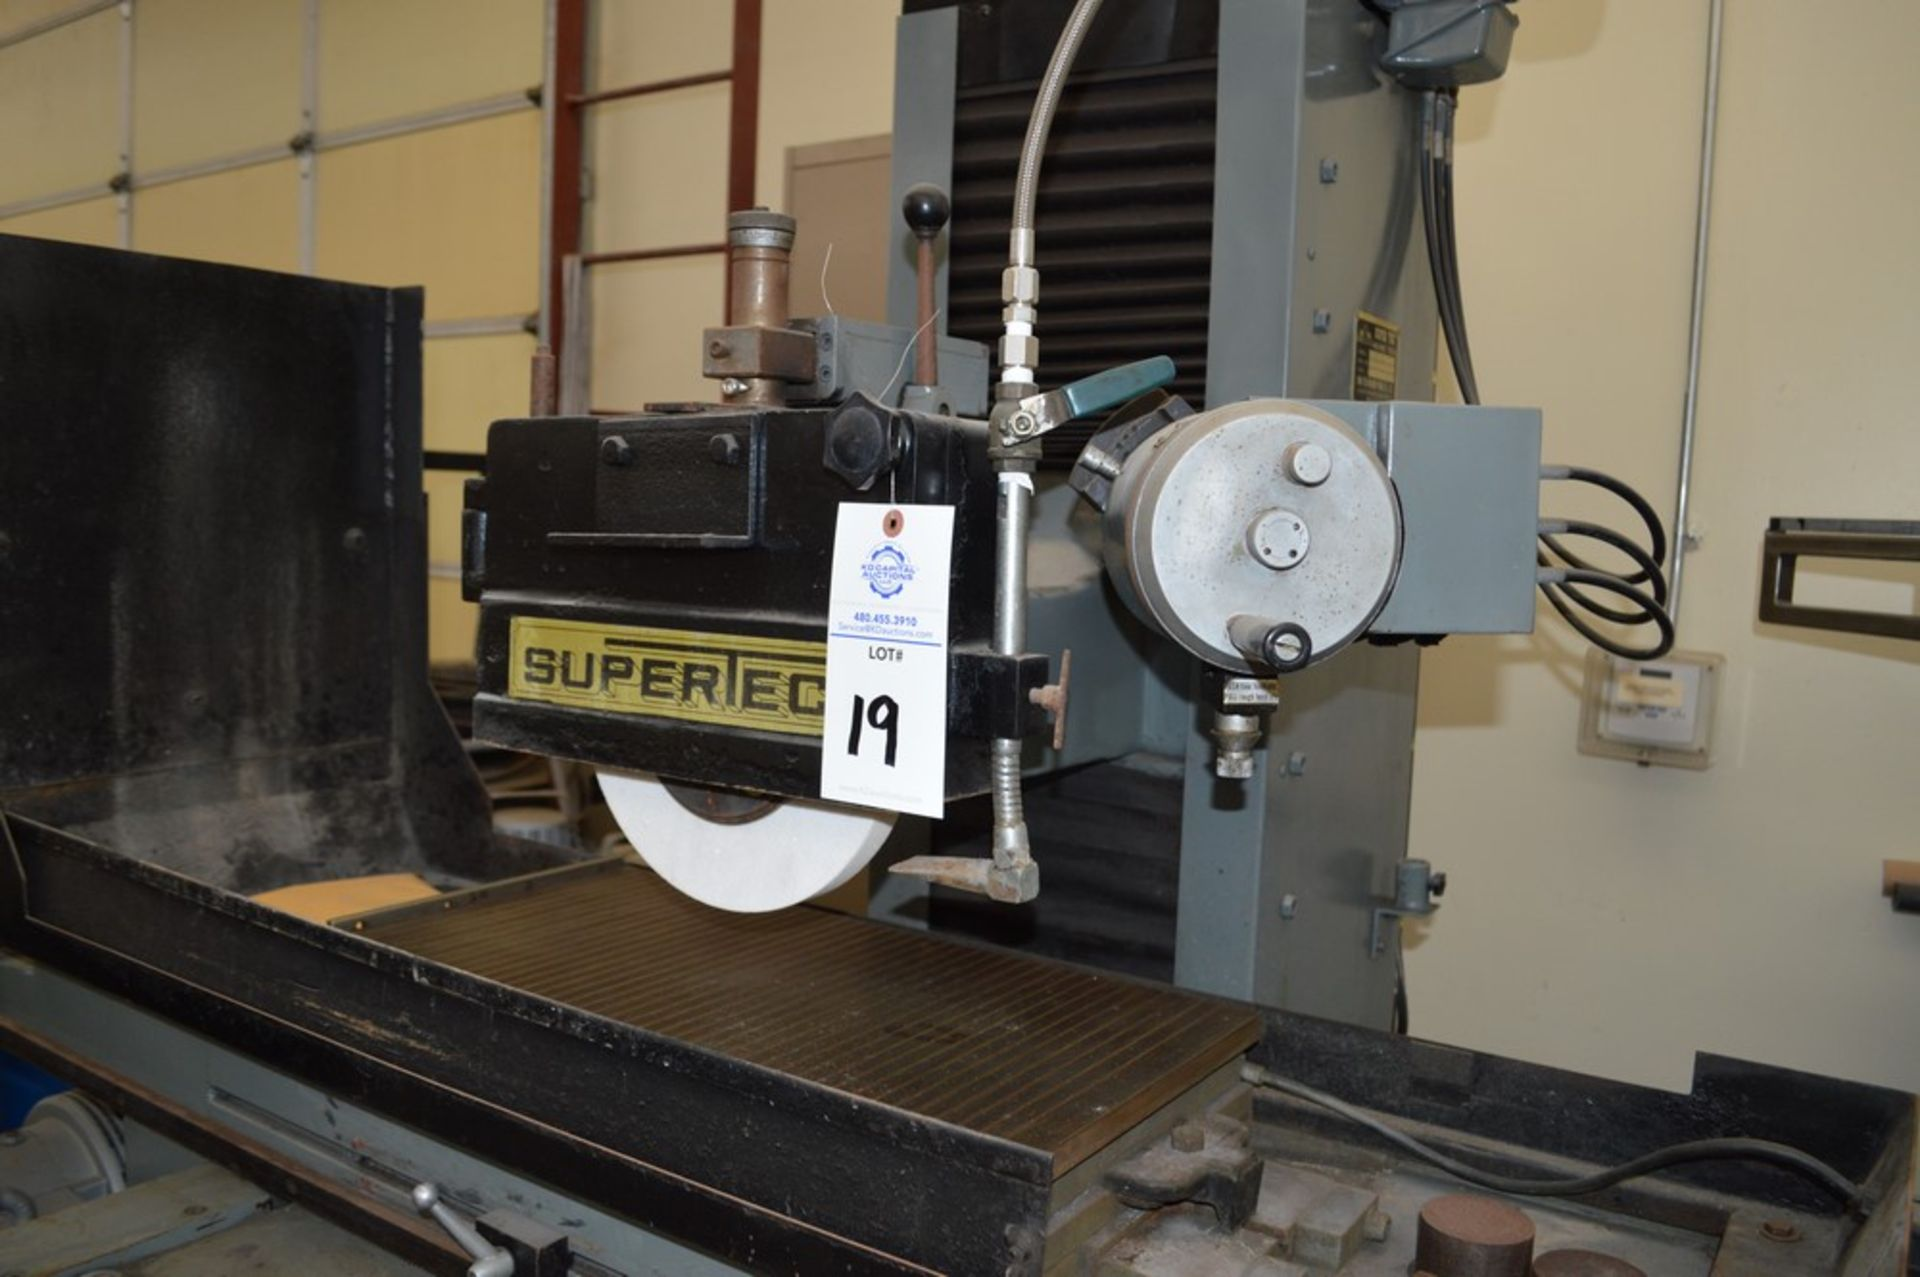 Supertec, STP-H1428 AD Grinder, Full three axis hydraulics, 12 x 27 magnetic chuck - Image 9 of 9